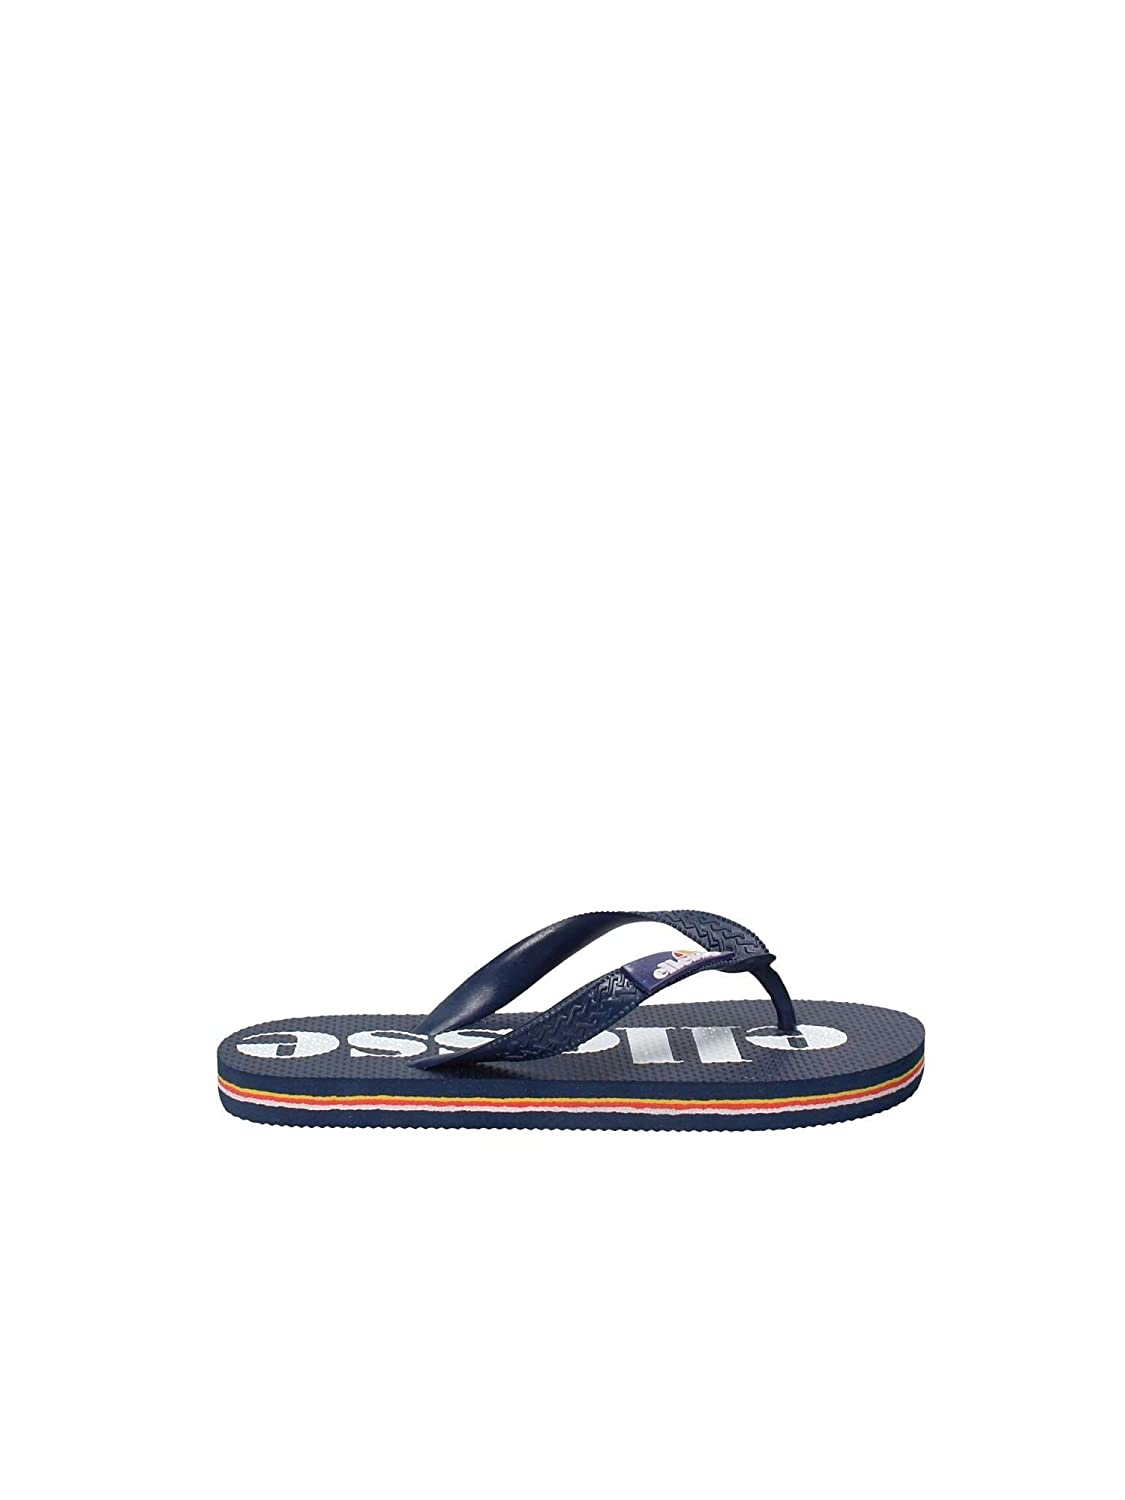 ellesse LH-001 Tongs Enfant Bleu 3839